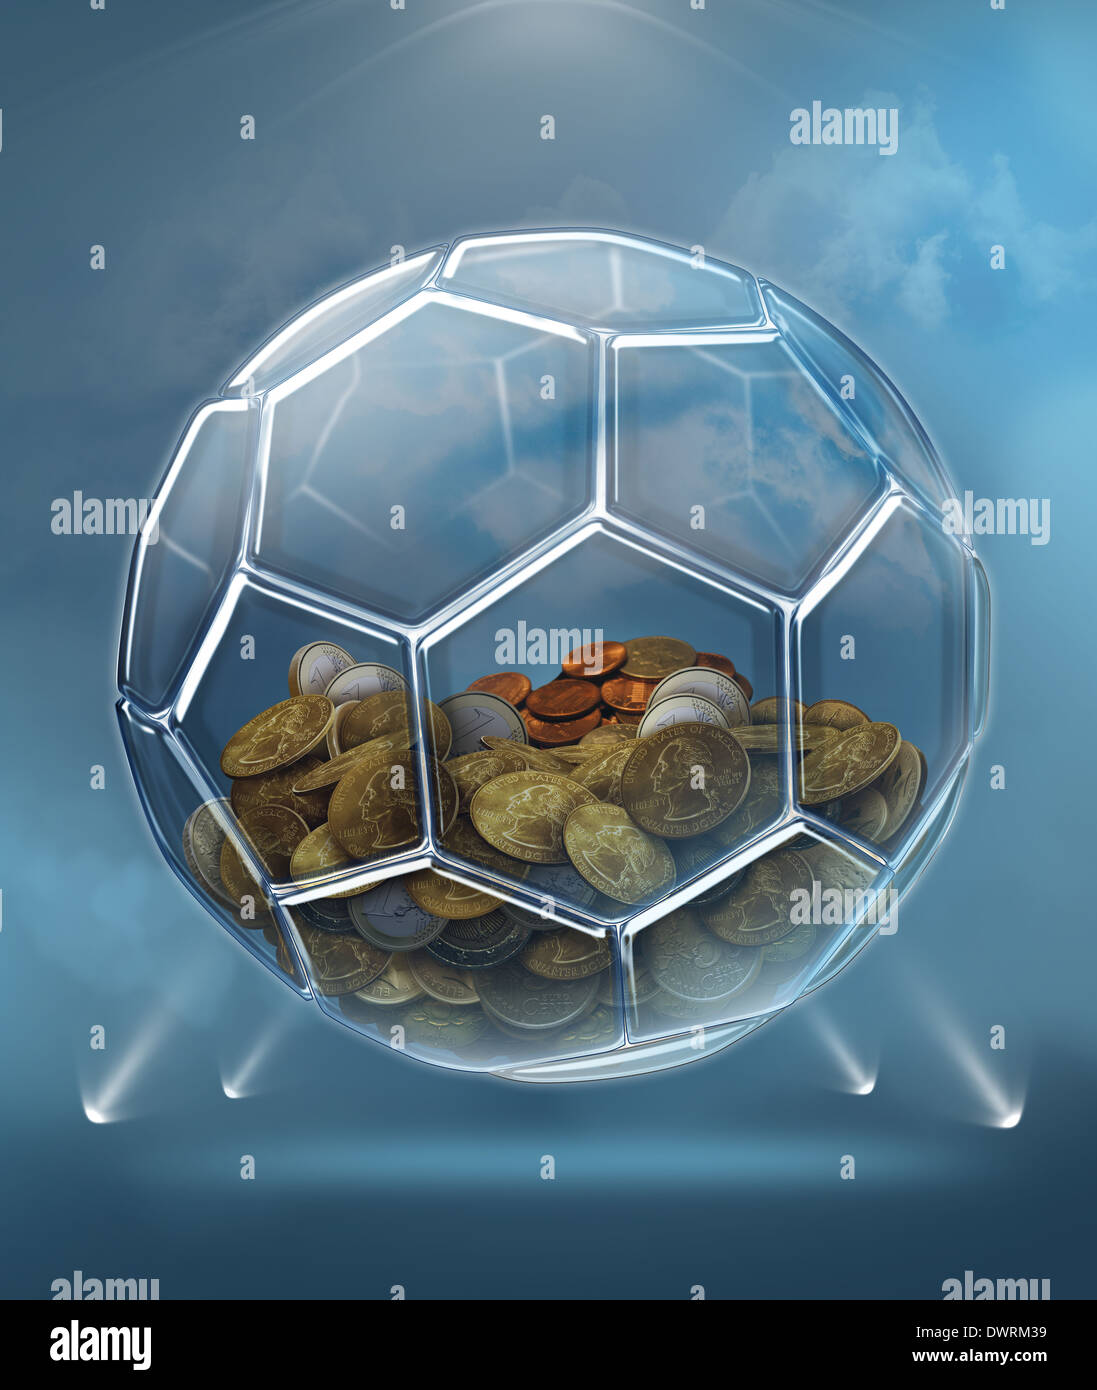 Illustration of coins inside transparent ball representing savings for soccer career - Stock Image